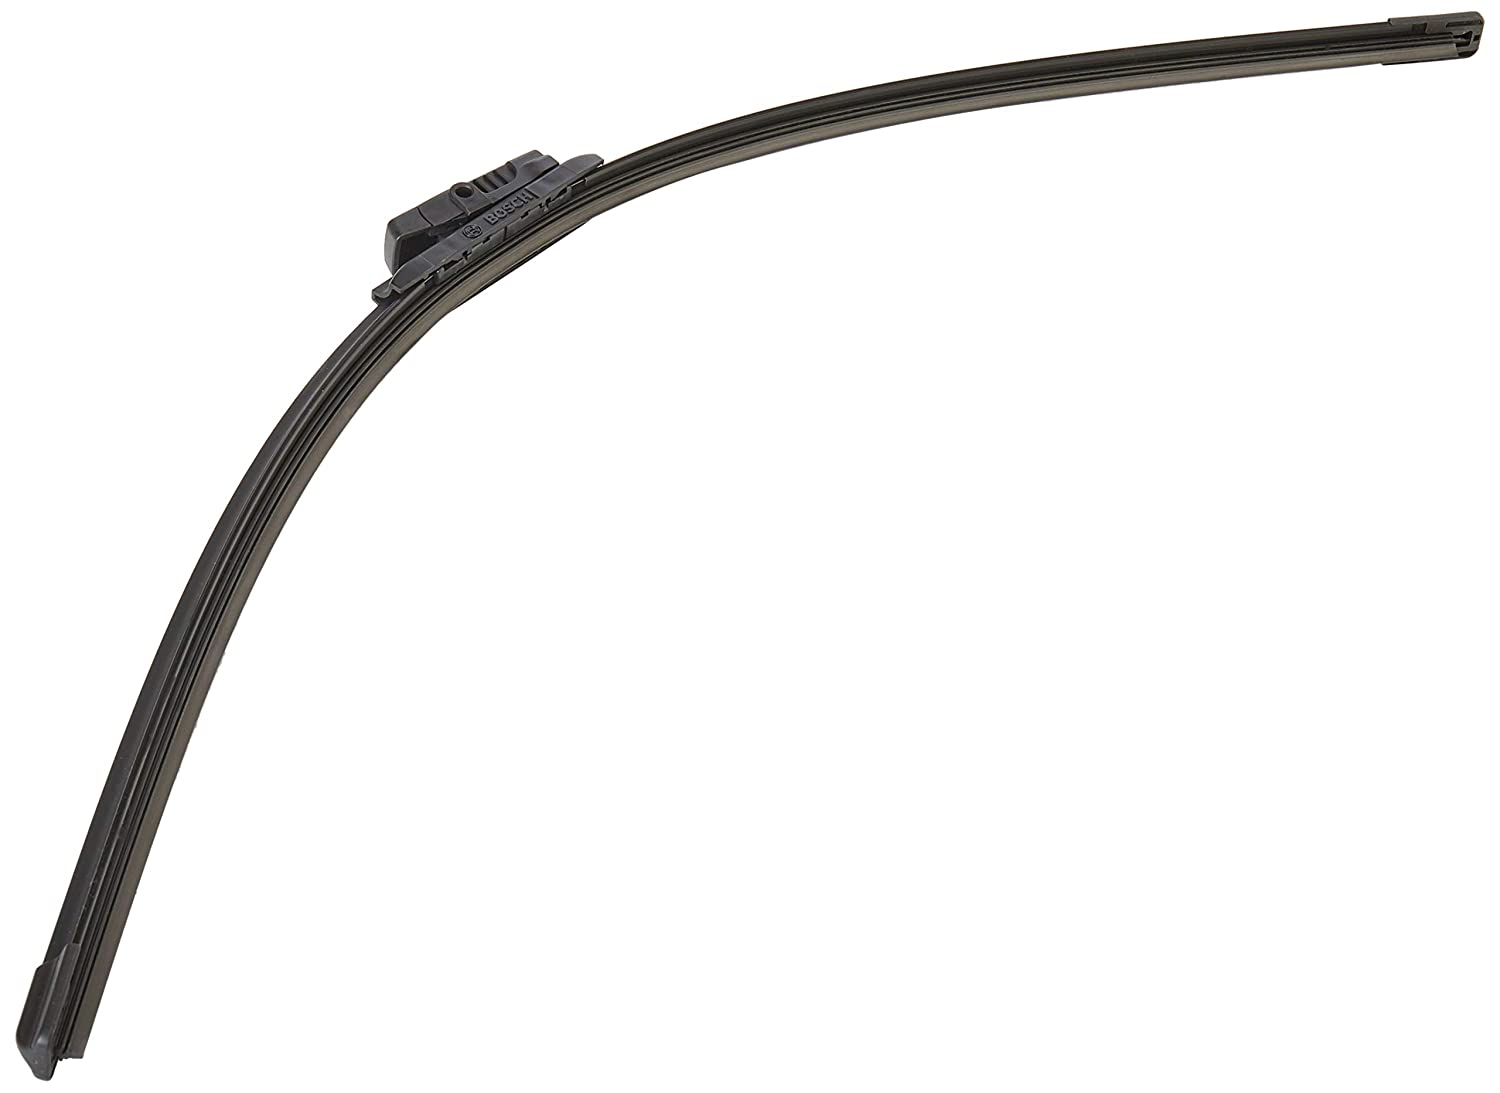 Bosch ICON 28OE Wiper Blade, Up to 40% Longer Life - 28' - Packaging may vary (Pack of 1) Up to 40% Longer Life - 28 - Packaging may vary (Pack of 1)